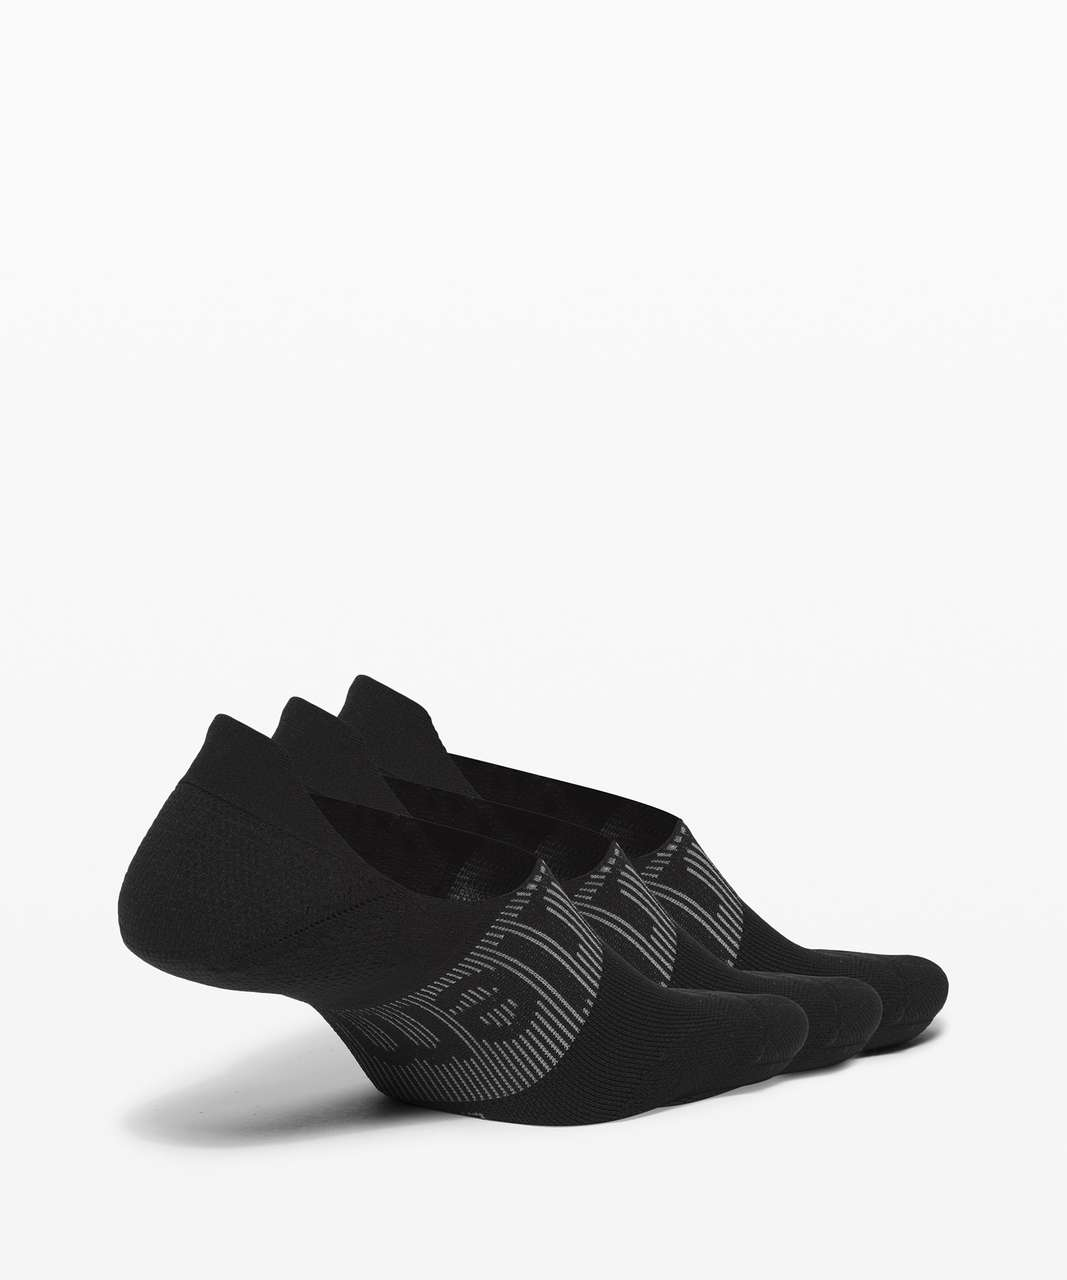 Lululemon Power Stride No-Show Sock with Active Grip *3 Pack - Black